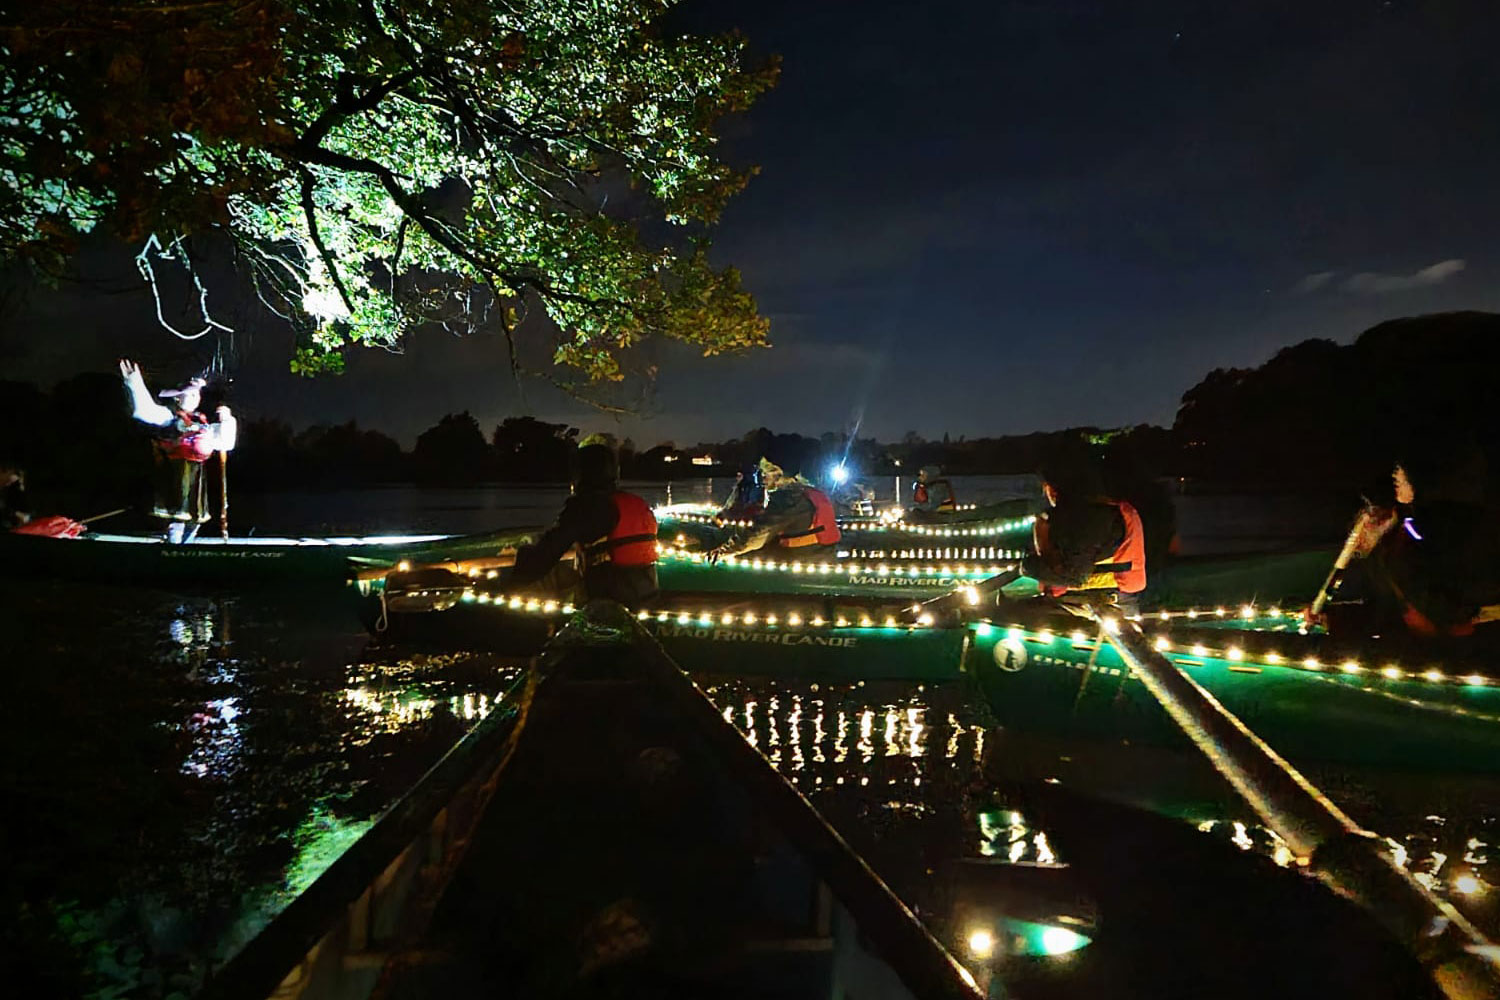 A group enjoying spooky tales on the Beaulieu River during a Spooky Halloween River Tour.